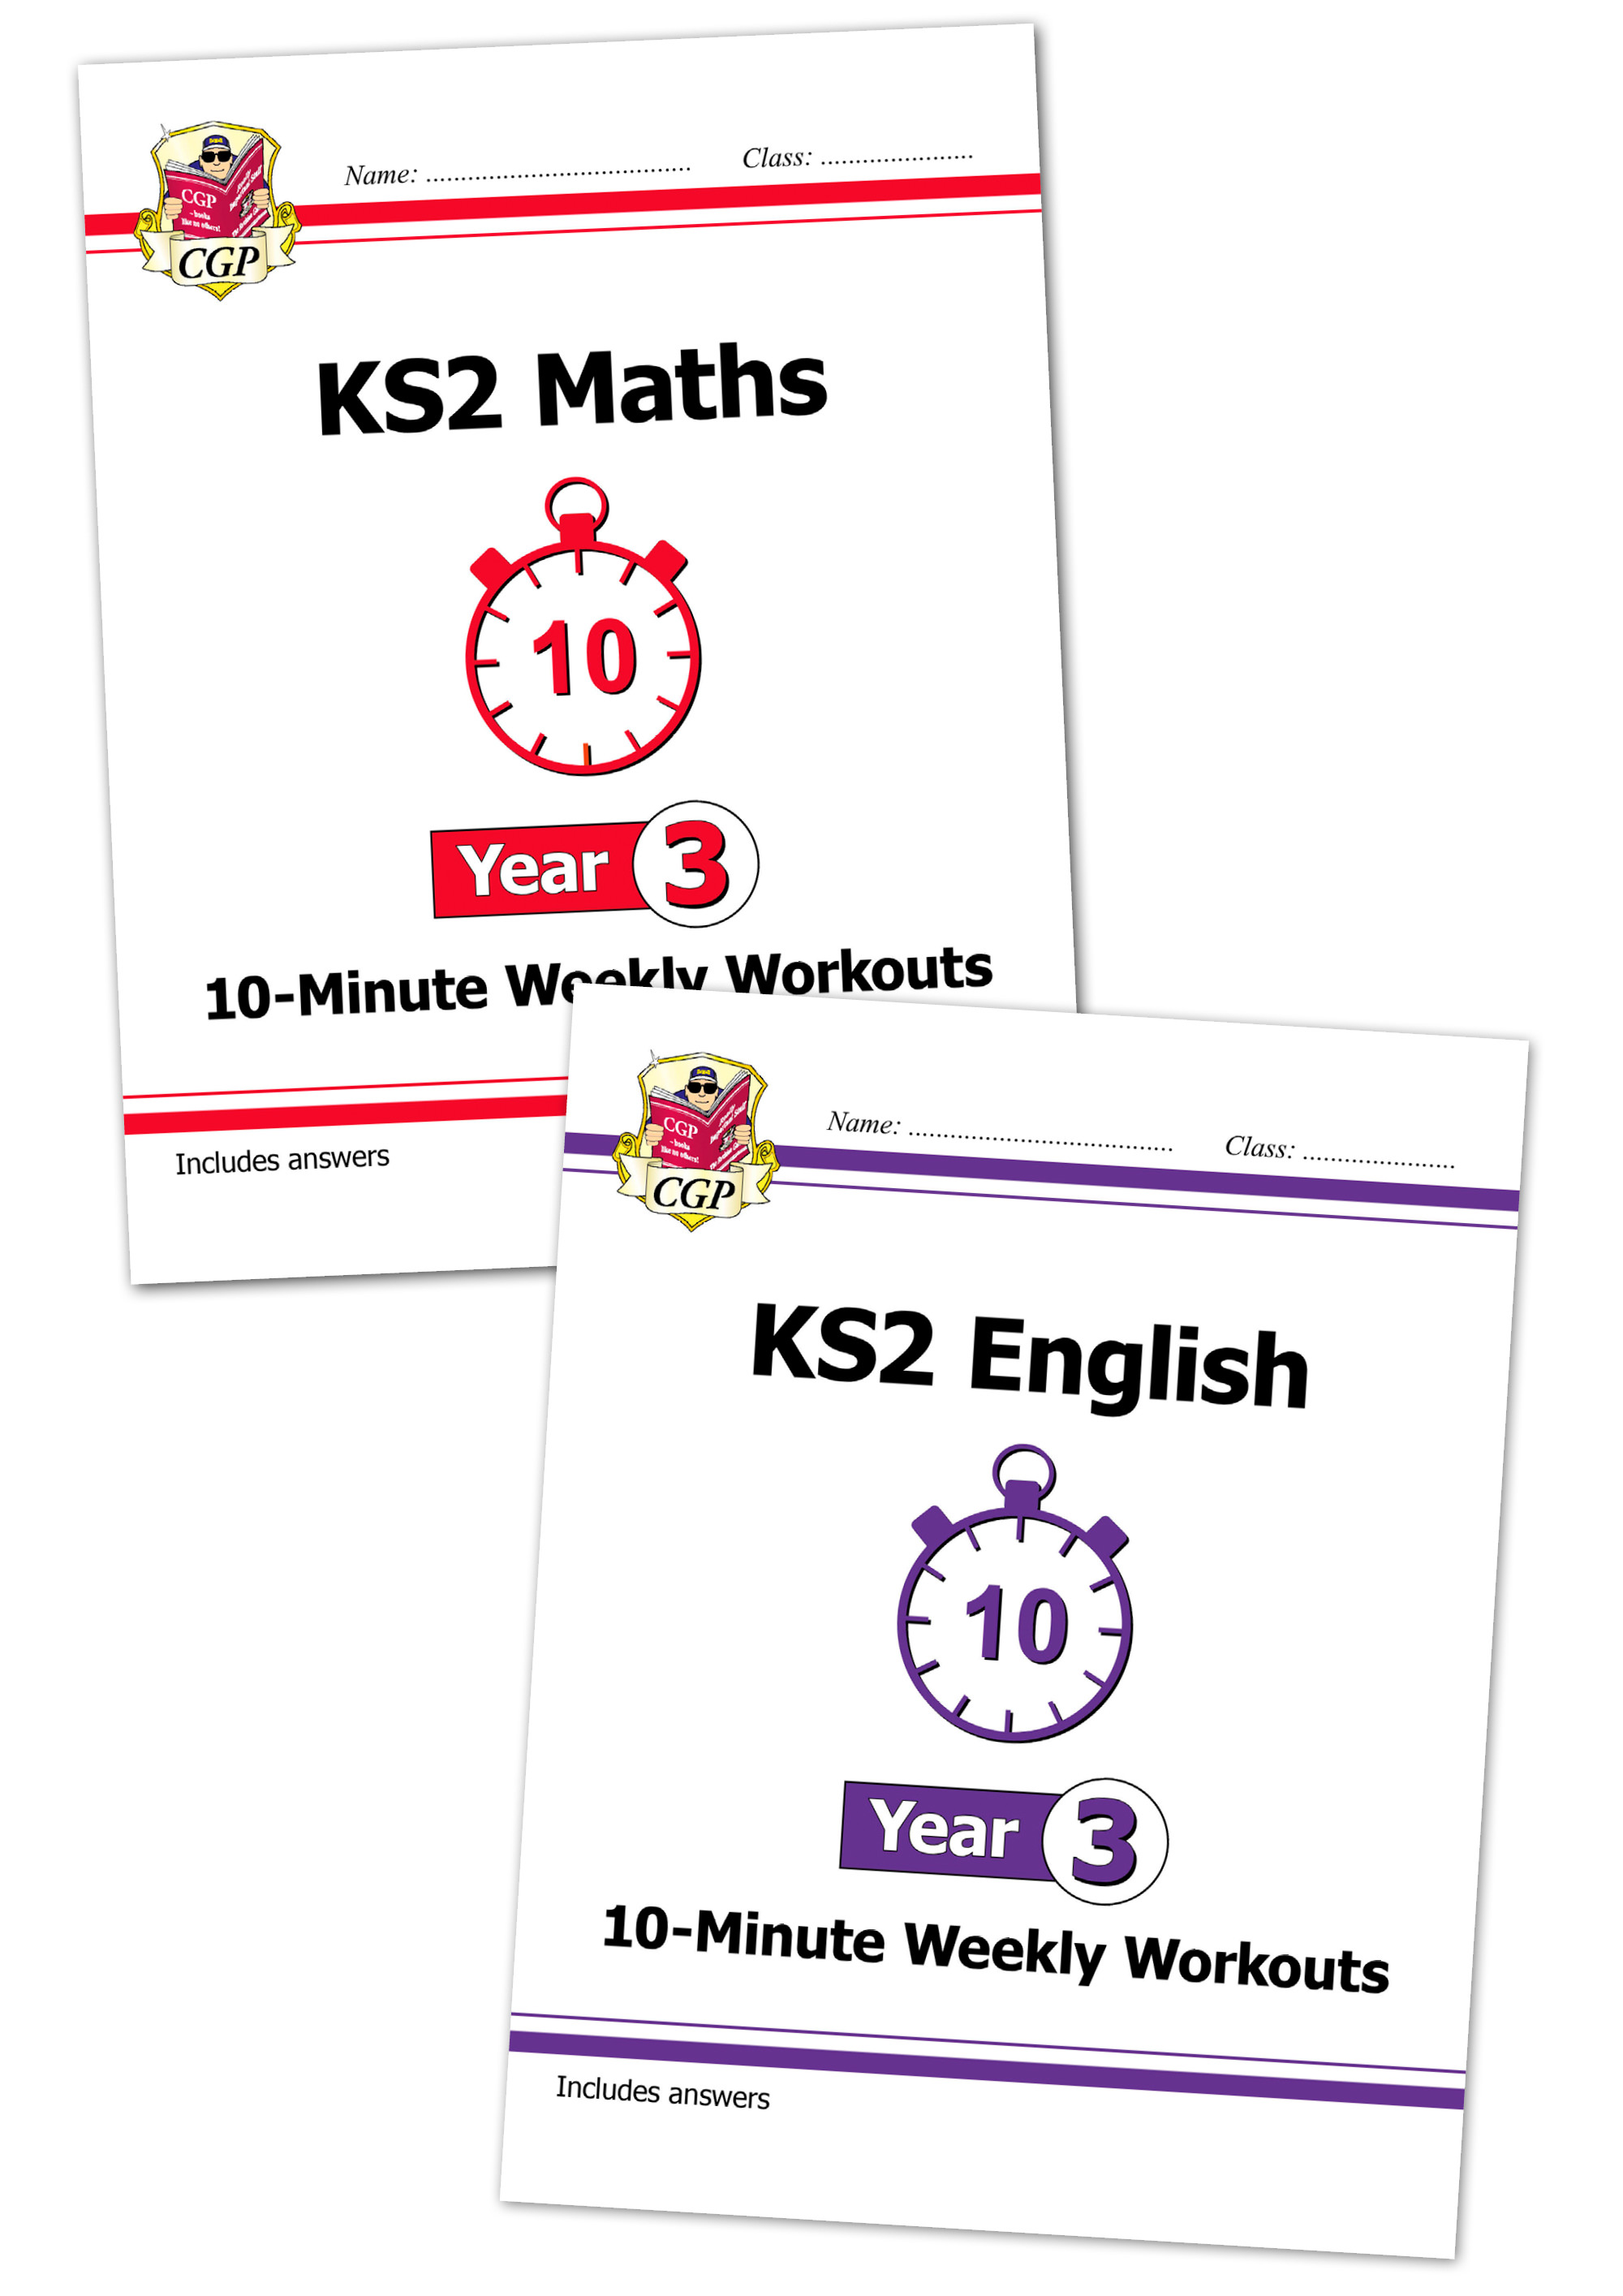 EM3XWB21 - KS2 Maths and English 10-Minute Weekly Workouts Bundle - Year 3